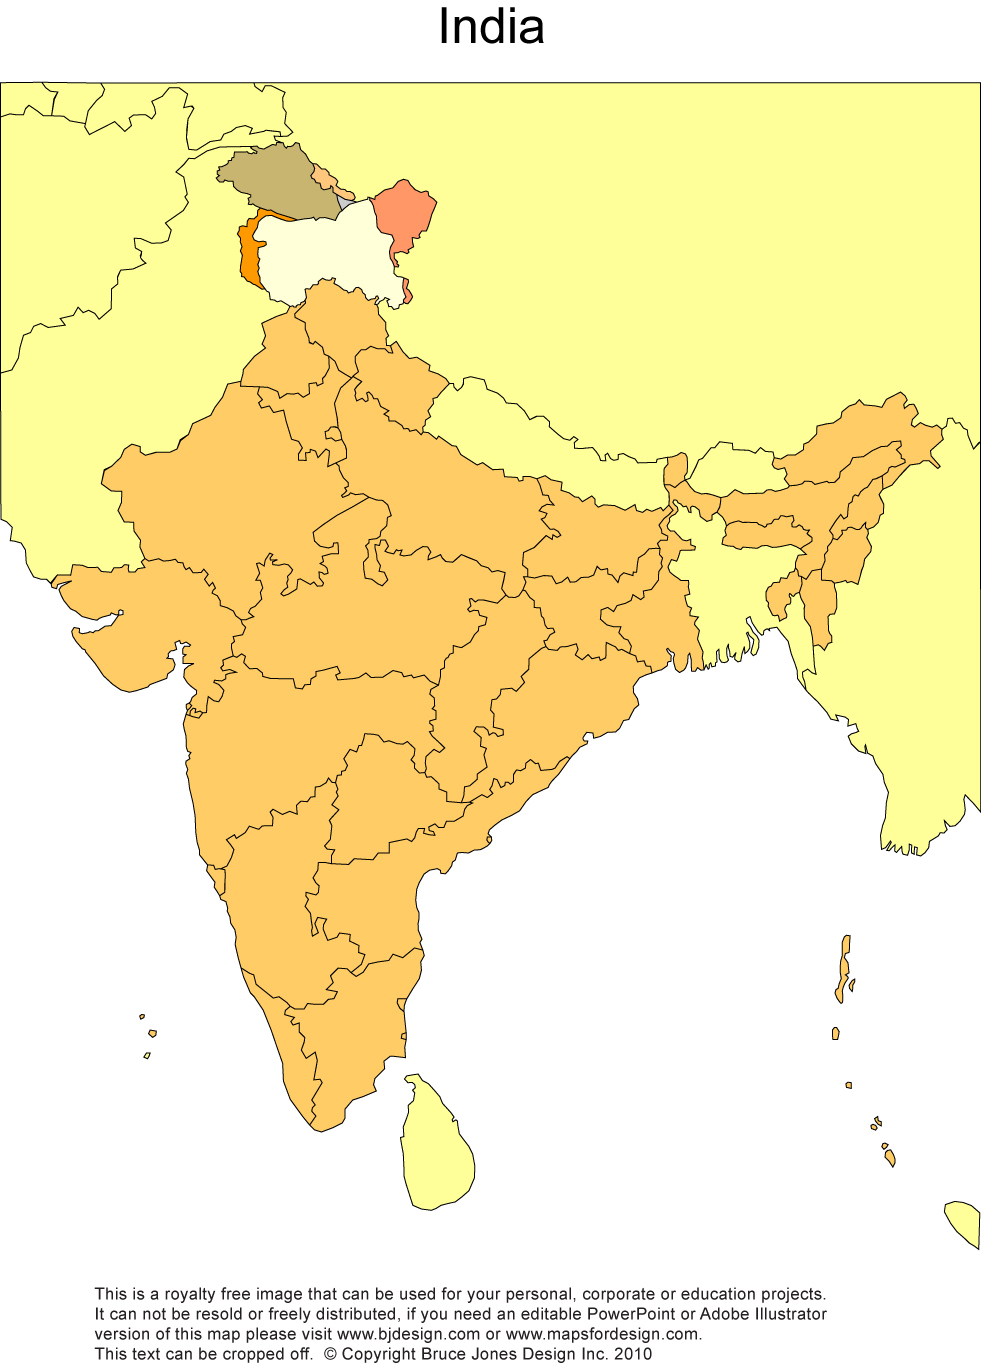 India Printable, Blank Maps, Outline Maps • Royalty Free on state map maps, state map washington, state map texas, state map lakes, state map united states, state map capitals, state map california, united states counties, state map zip codes, state map politics, state map england, state map regions, state map weather, state map mountains,